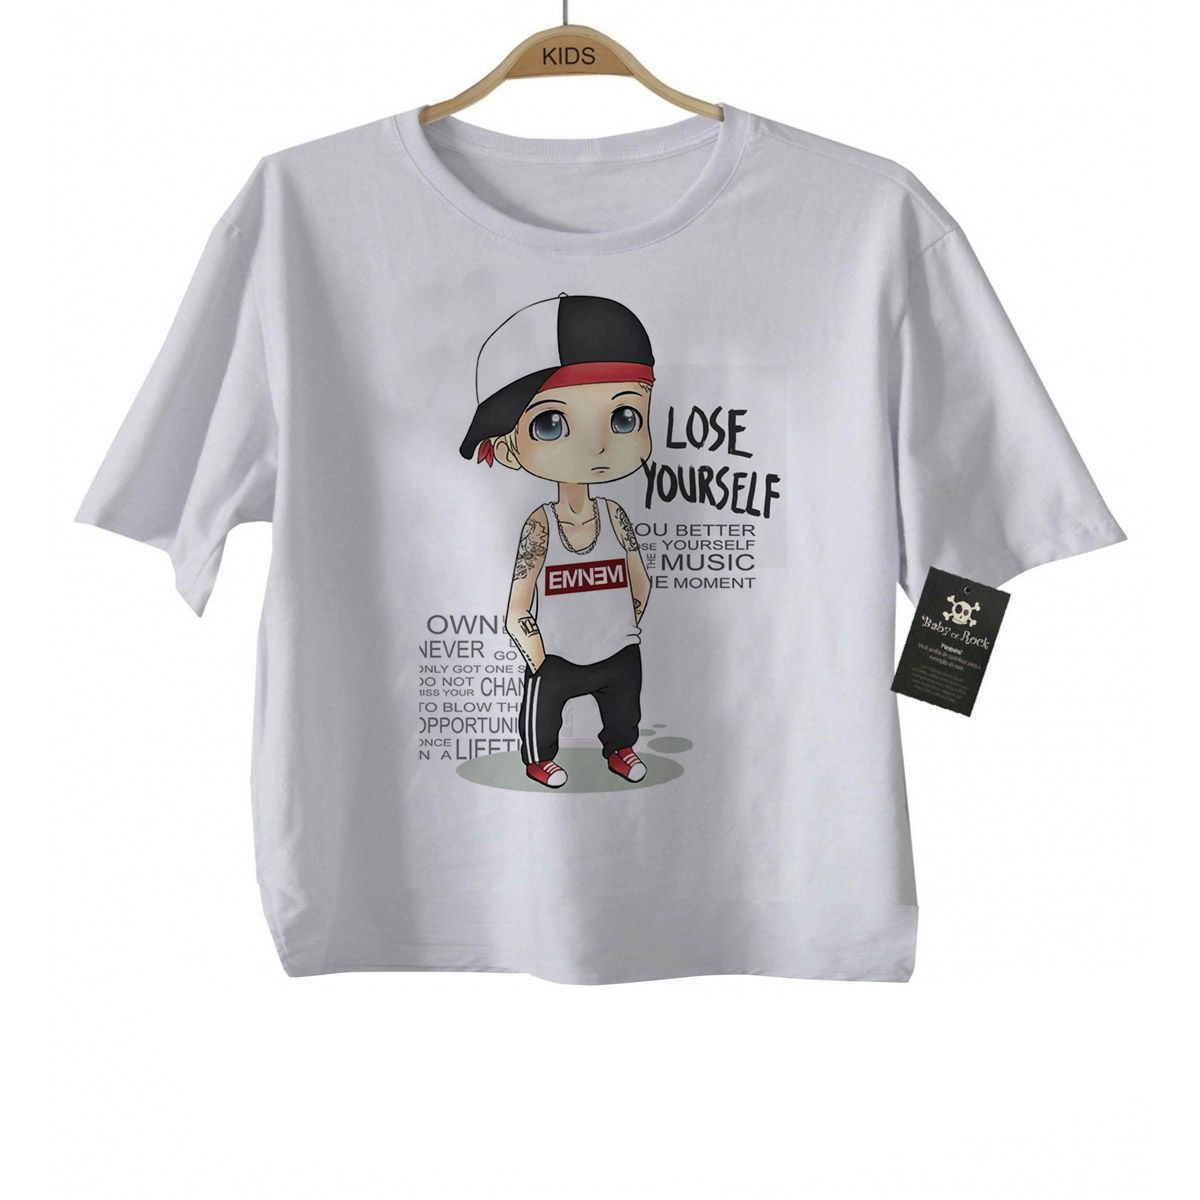 Camiseta Infantil  Rap / Hip hop   Bebe  Eminem - White  - Baby Monster - Body Bebe